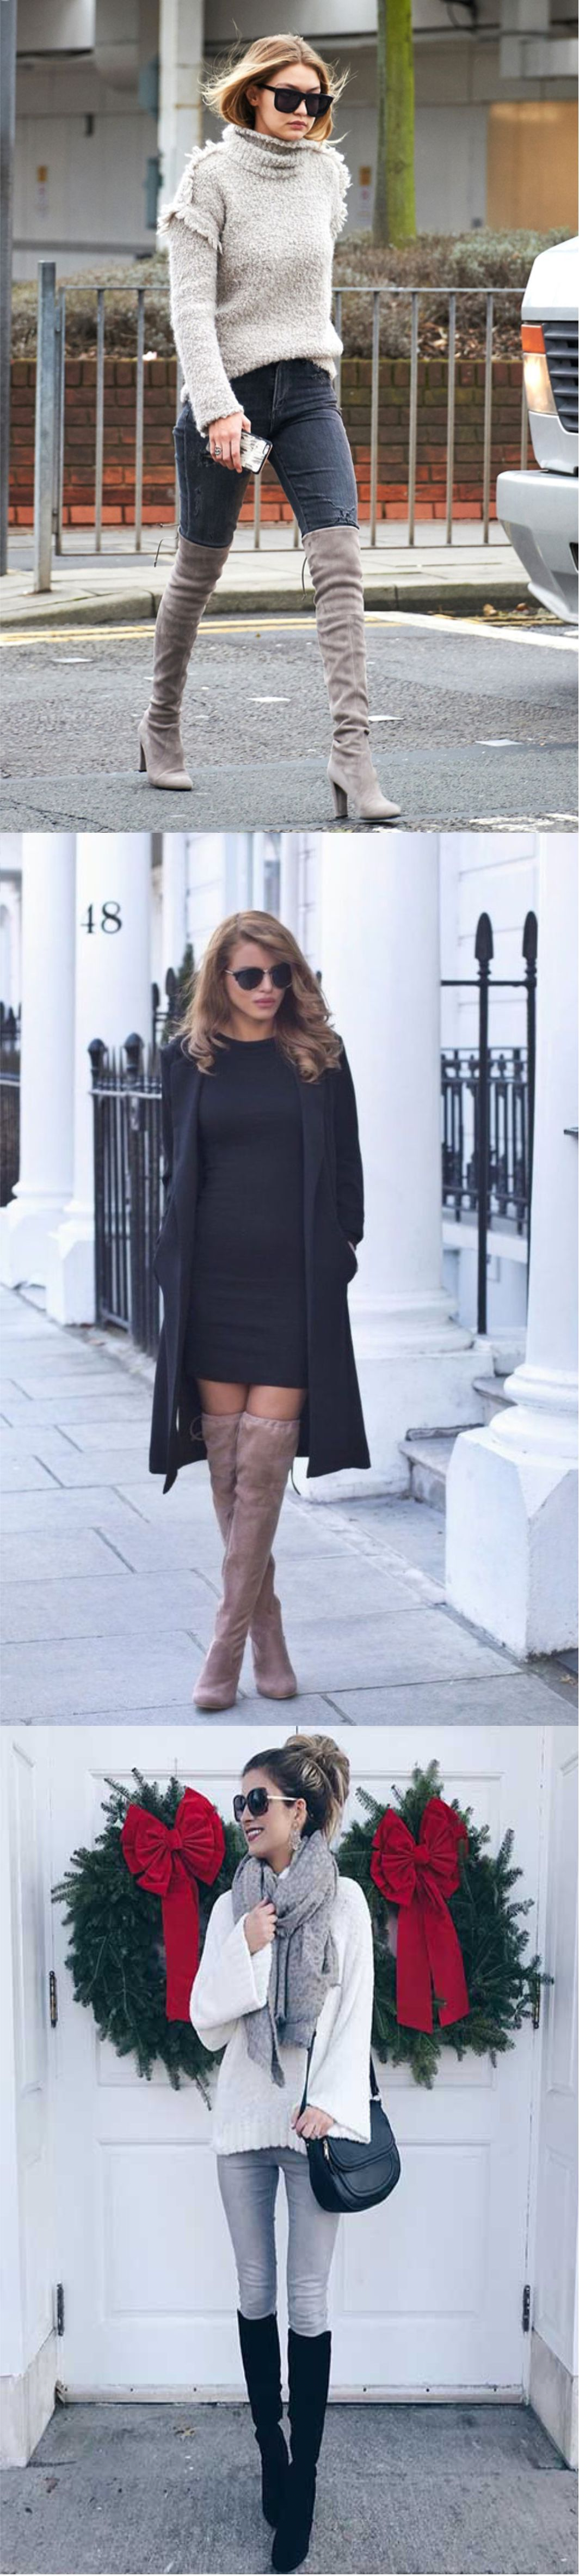 All New Stylish Over Knee Boots Fashion Ideas 2018